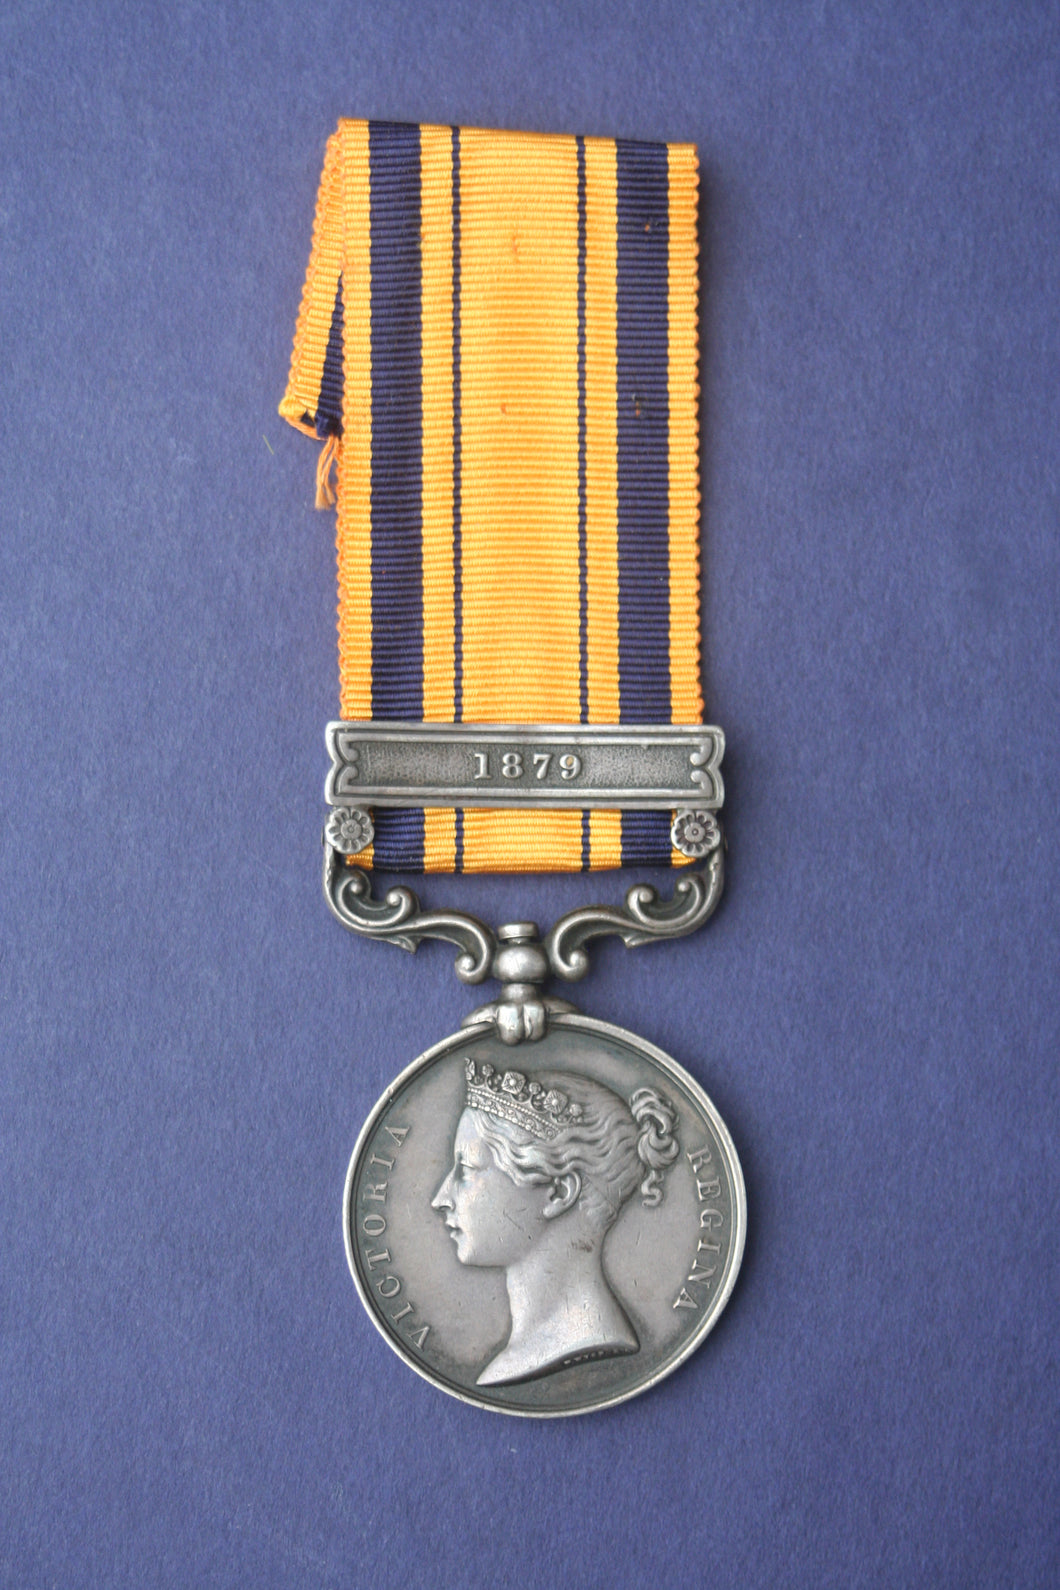 South Africa General Service Medal, 1879 bar ('Anglo-Zulu War') - 1495 Pte. J. Massie, 91st Highlanders.